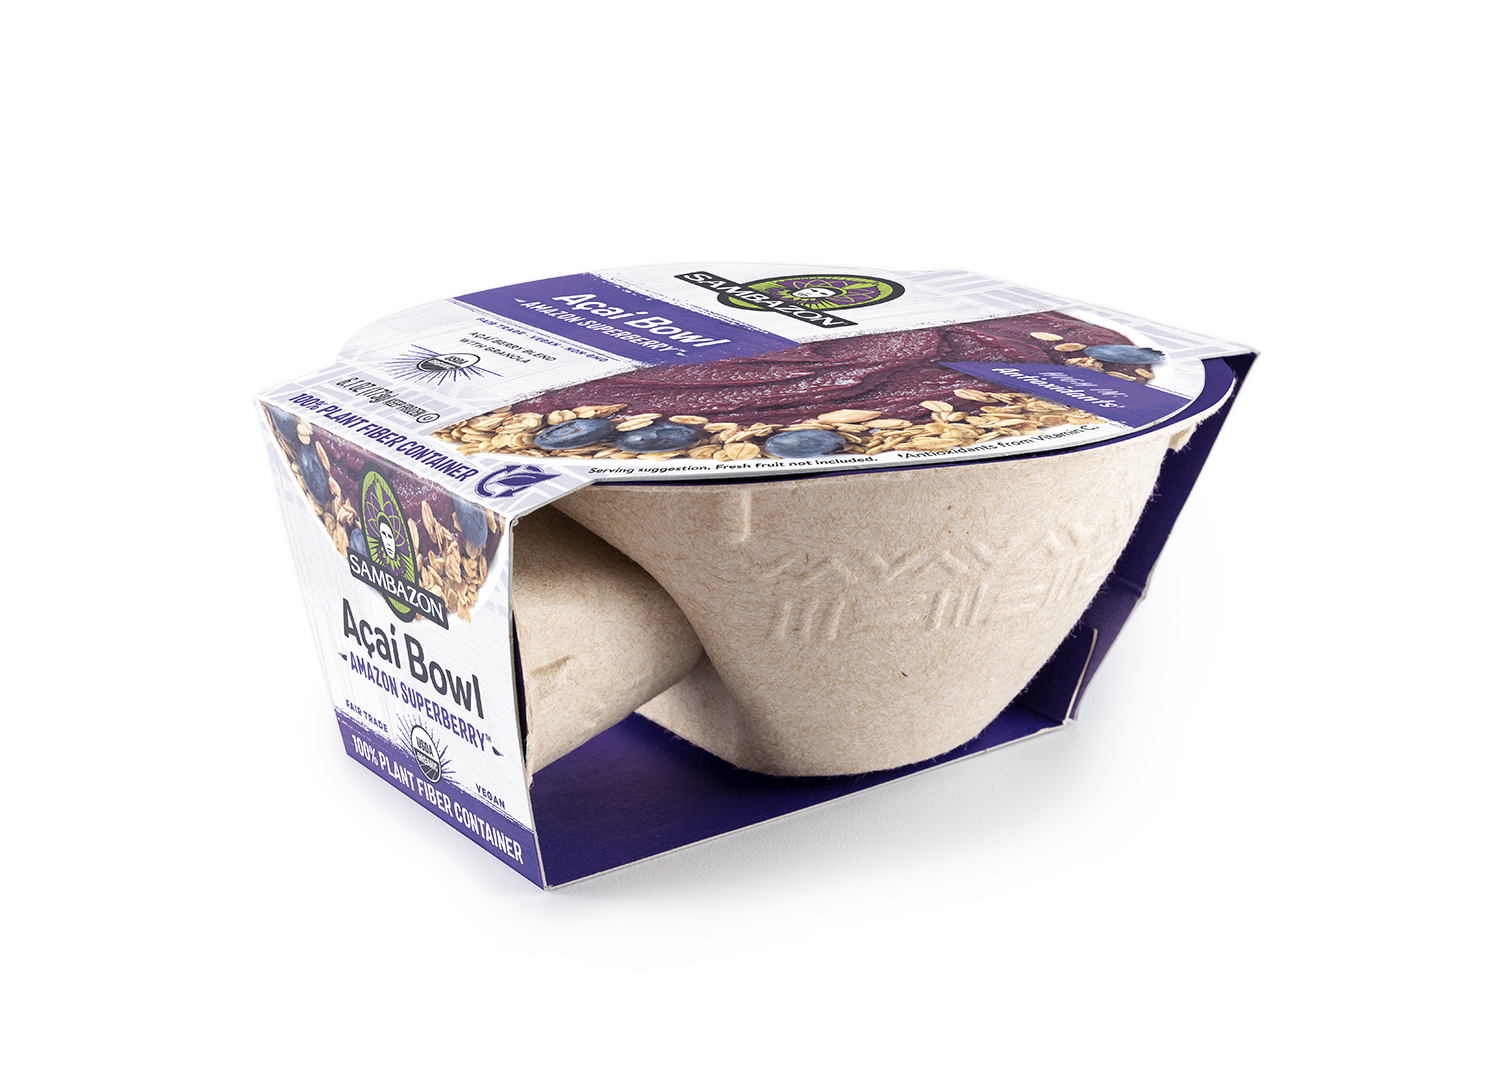 Ready_to_eat_Açaí_Bowl_Plant_base_packaging.png